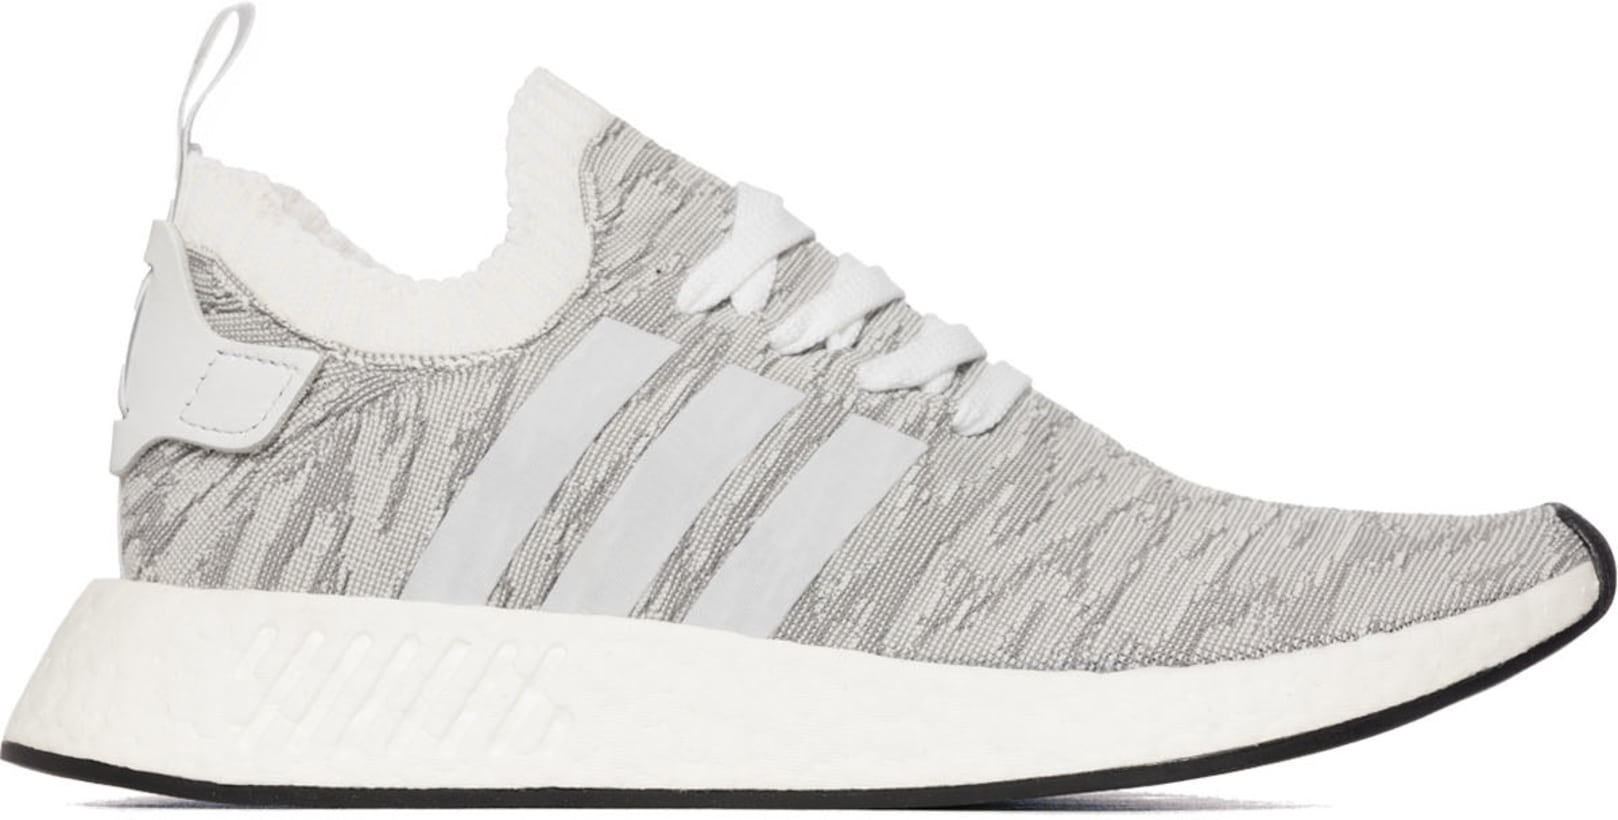 22c8ced366d7f adidas Originals. NMD R2 Primeknit - Grey Footwear White Core Black Future  Harvest